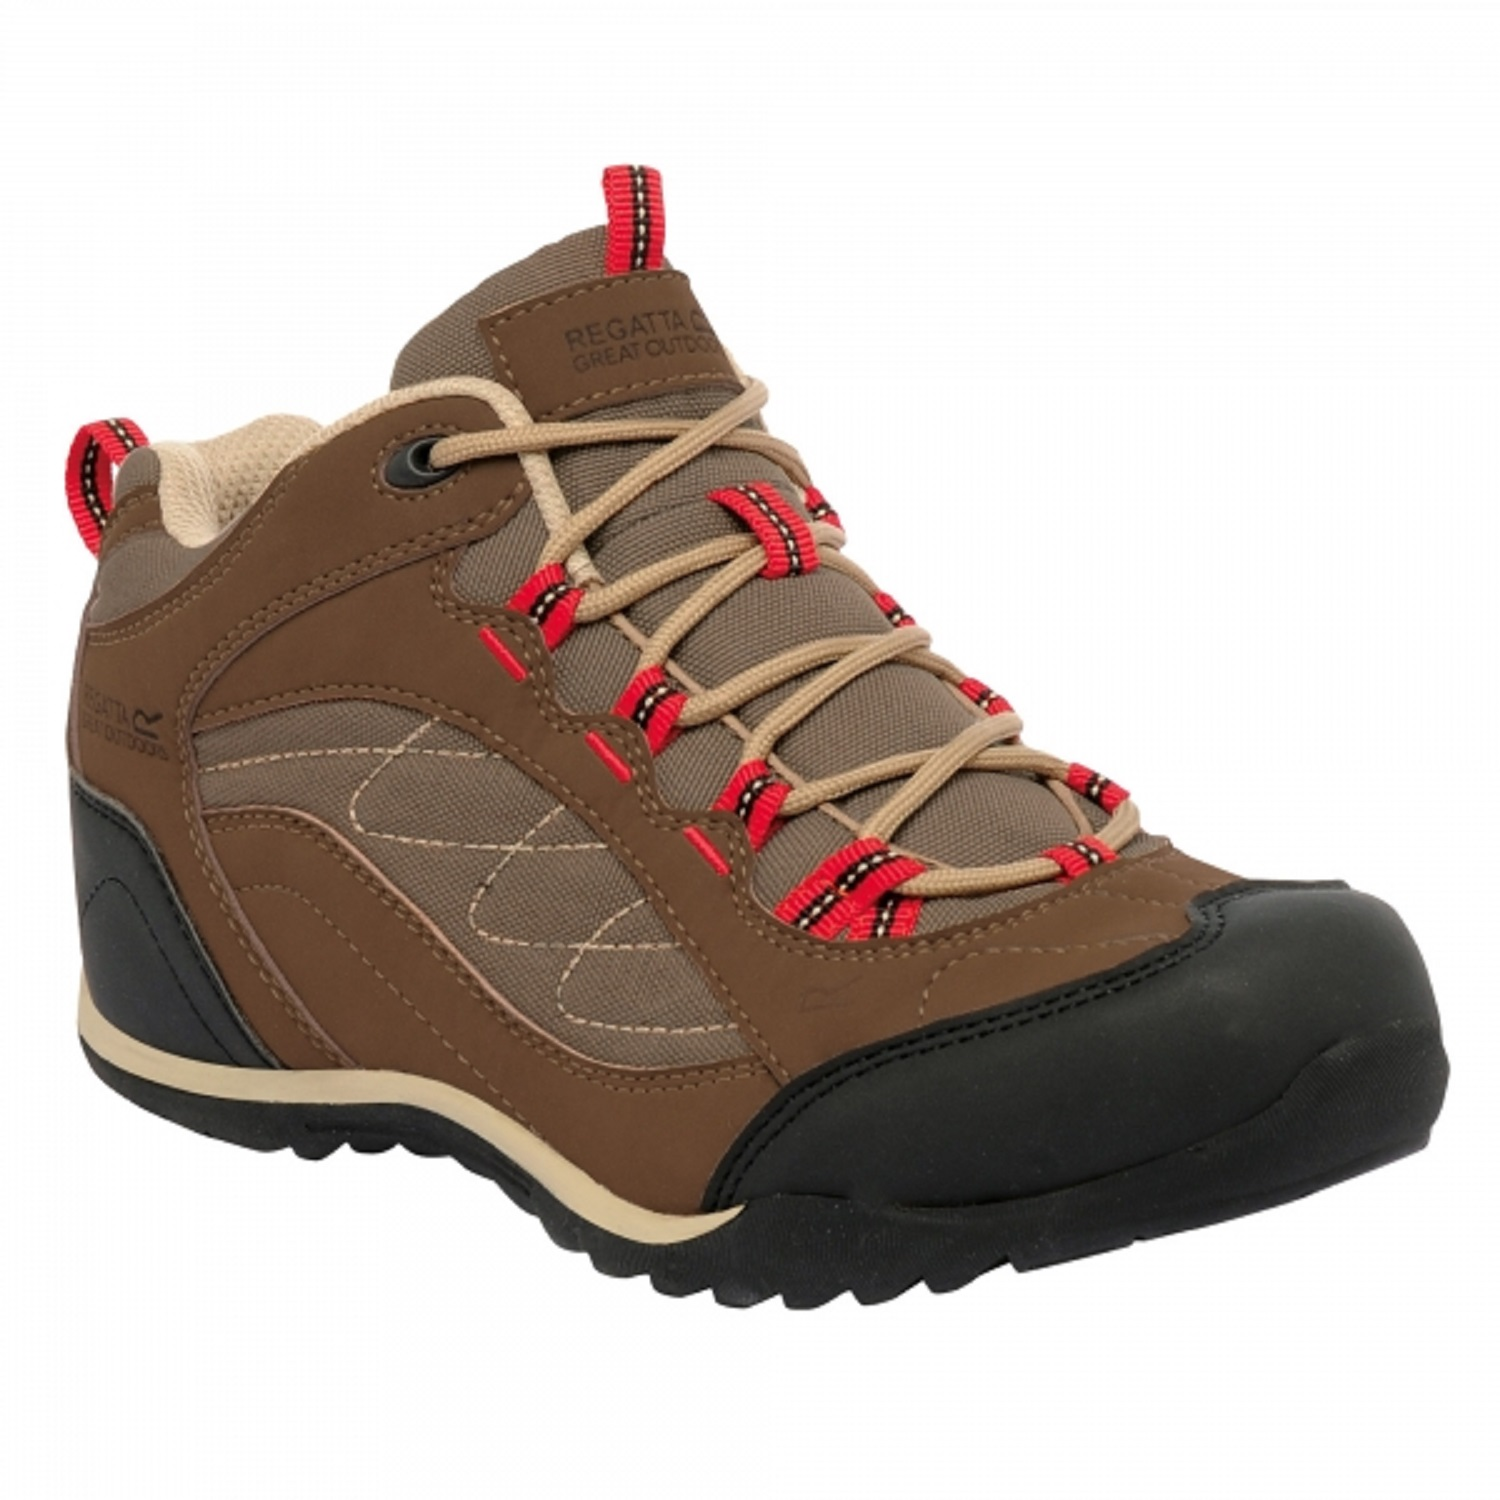 Wonderful Theyre Lightweight Enough To Chuck On For A Casual Stroll Or  The Siren Edge Q2 Isnt Outdoor Shoe Specialist Merrells B